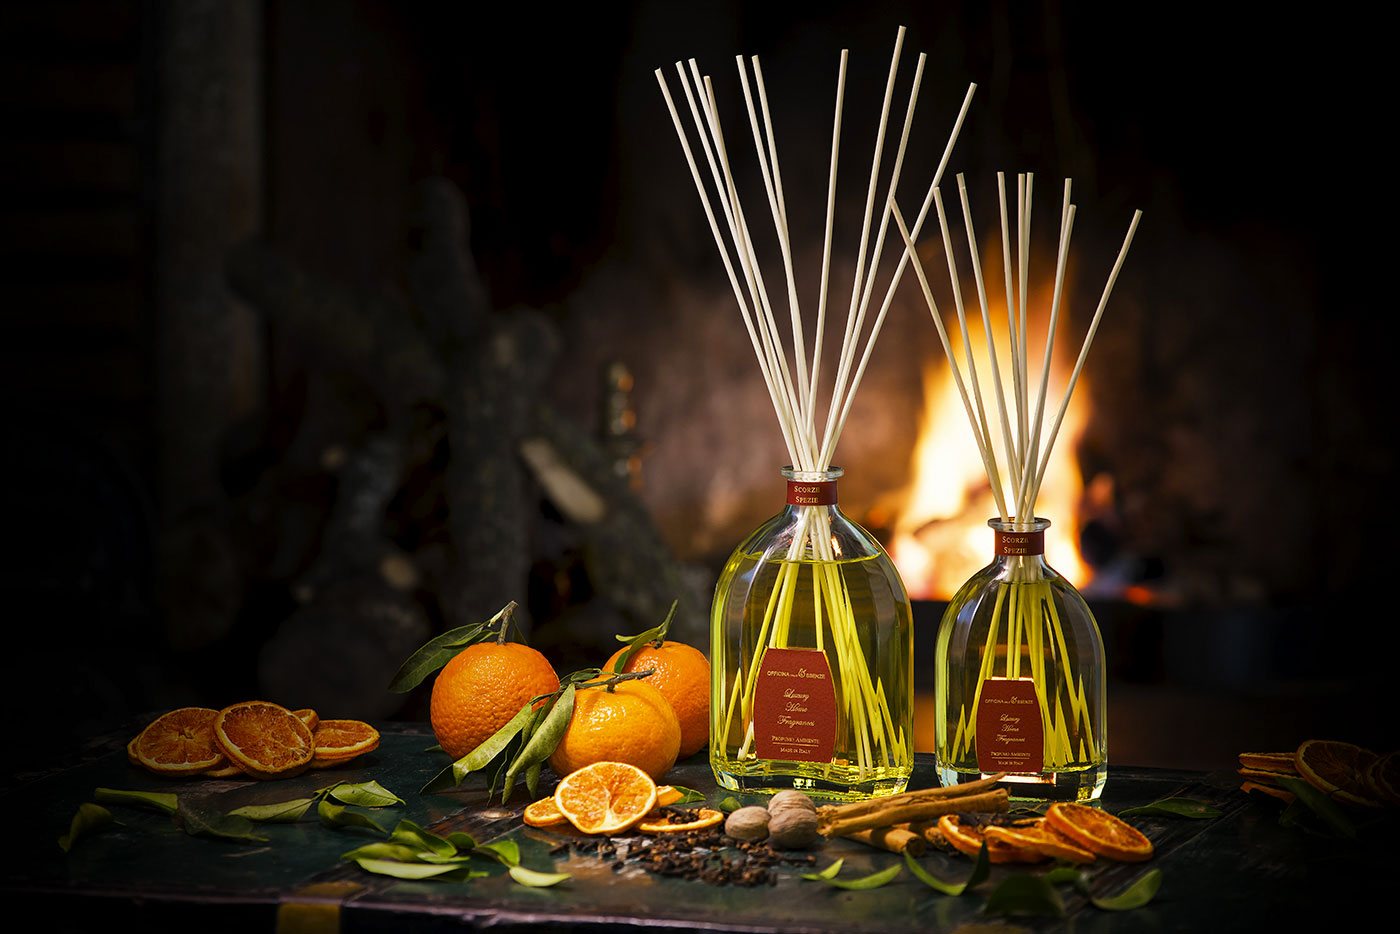 Scorze Spezie is the Christmas reed diffuser